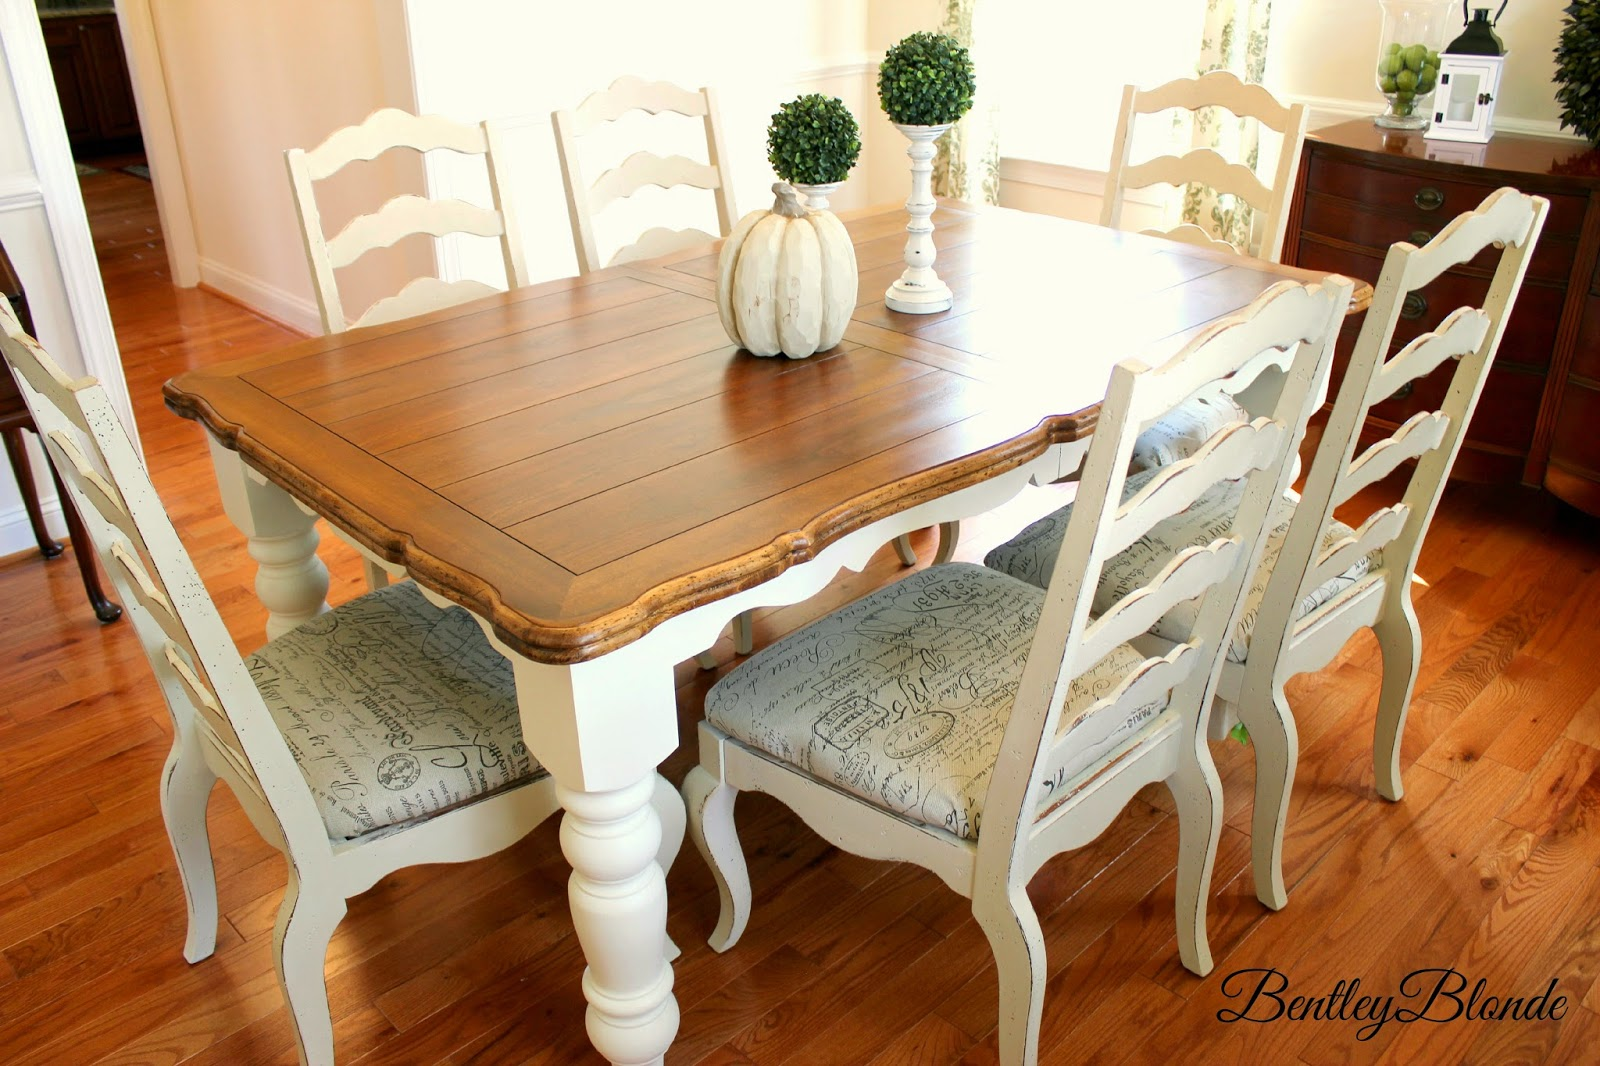 I can t wait to sit around this table with family  enjoying many delicious  meals and memories together in the future. BentleyBlonde  DIY Farmhouse Table   Dining Set Makeover with